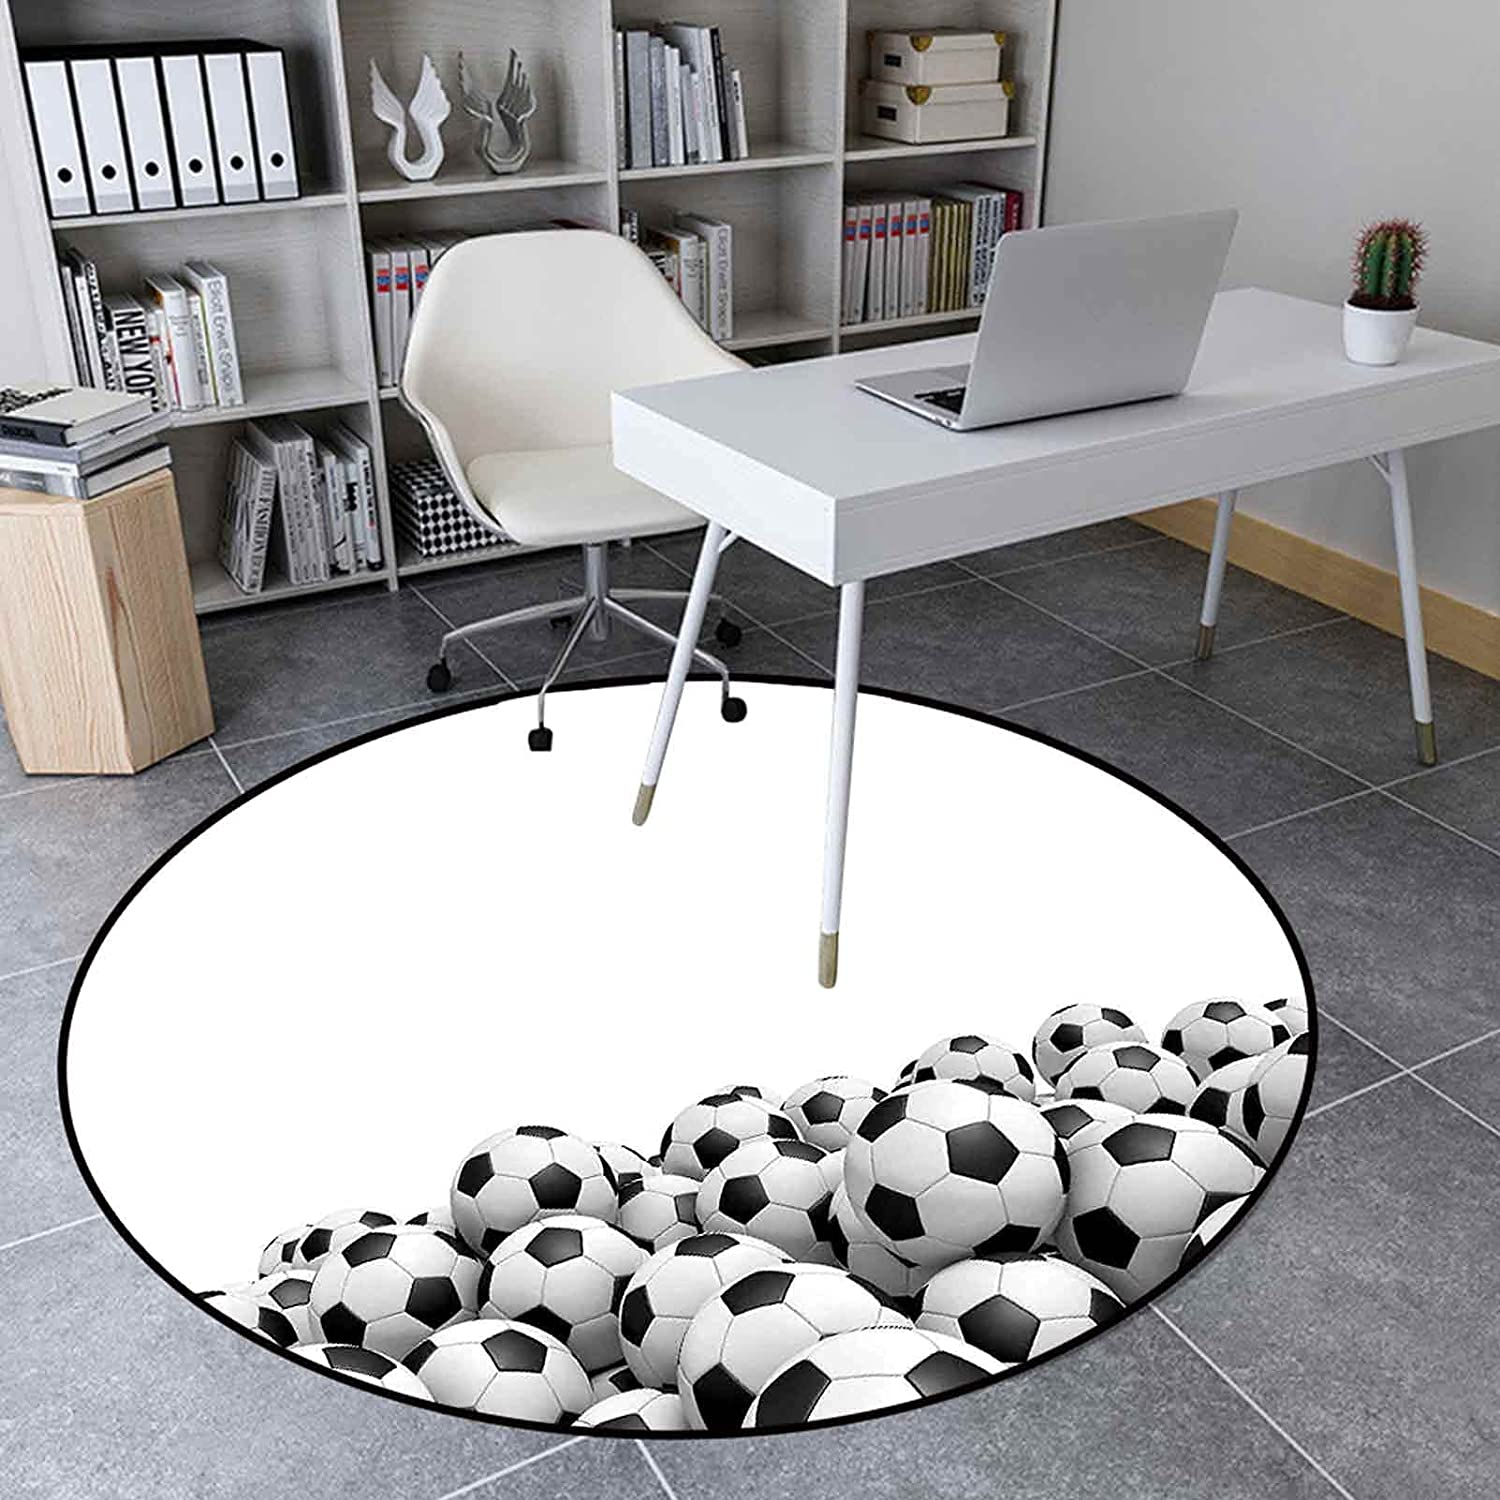 Round Area Rugs 2.95' Excellent for Illustration Room o Living Cheap